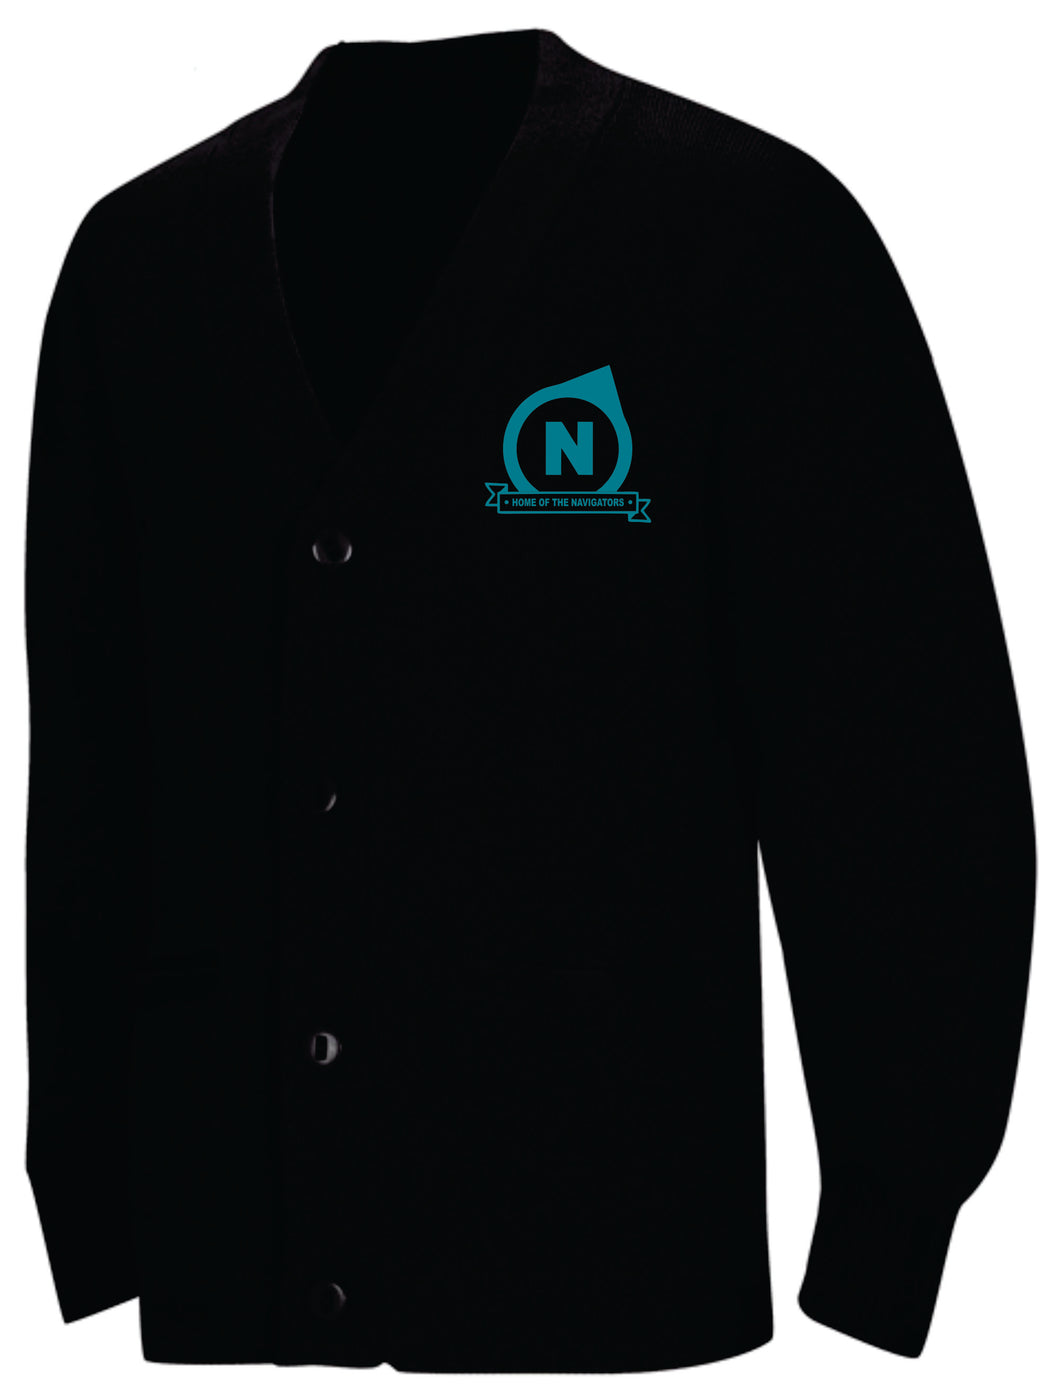 KIPP Northeast College Prep Cardigan